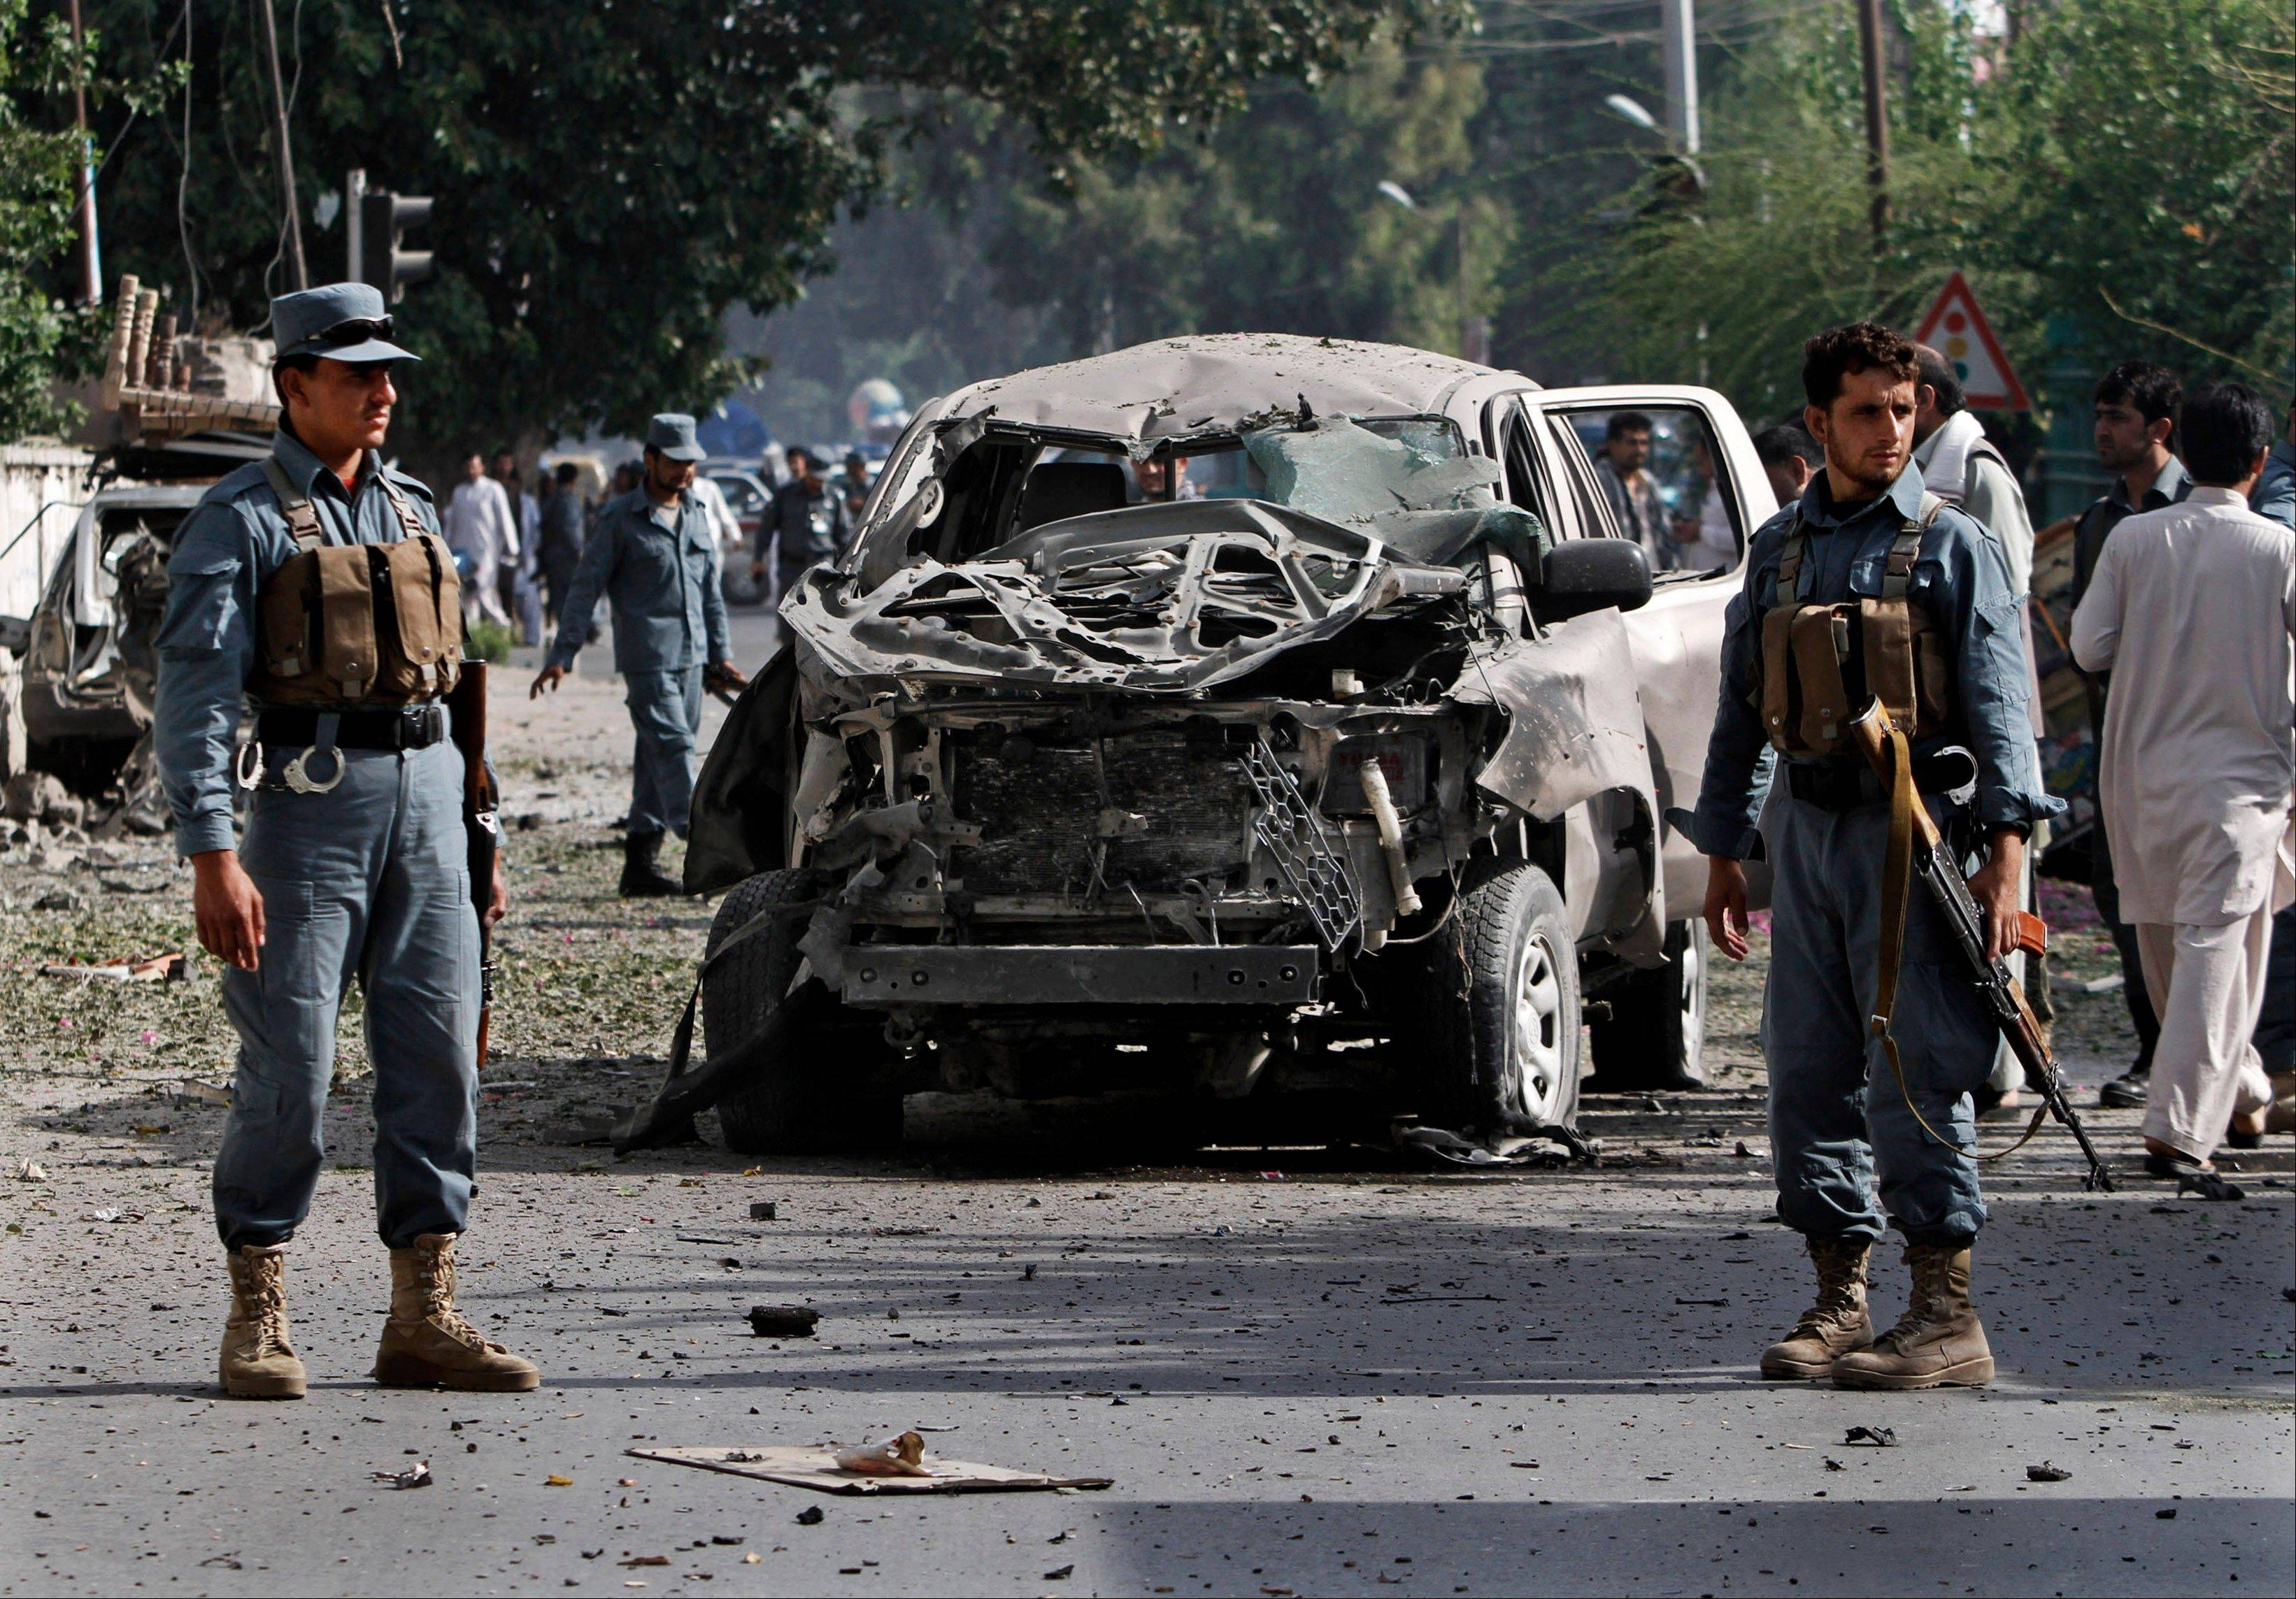 Afghan Police officers inspect the wreckage of vehicle after a bomb explosion in the city of Jalalabad east of Kabul, Afghanistan, Monday. At least five civilians were injured as a bomb targeting a government employees' bus went off Monday morning, a police source said.